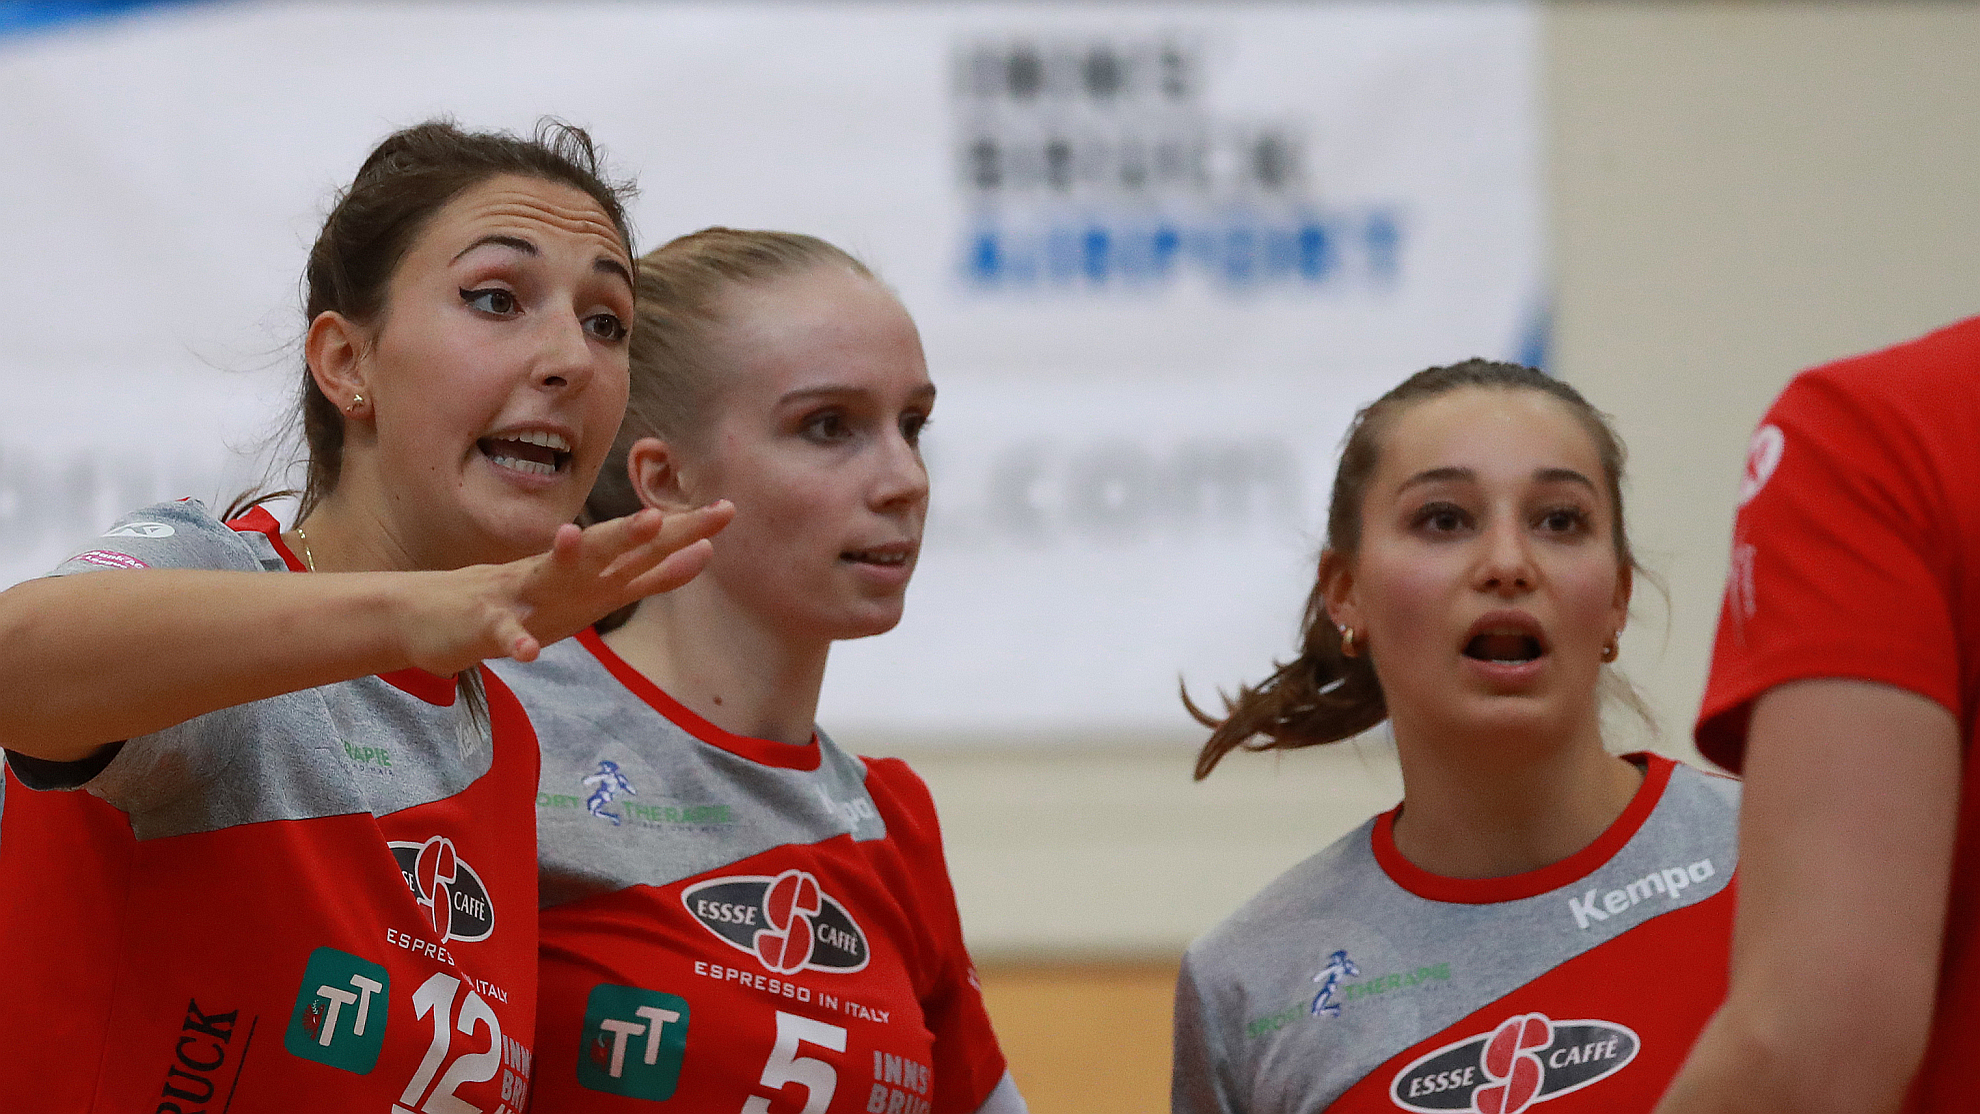 TI-esssecaffè-volley 2019 - FOTO © GEPA pictures/Andreas Pranter